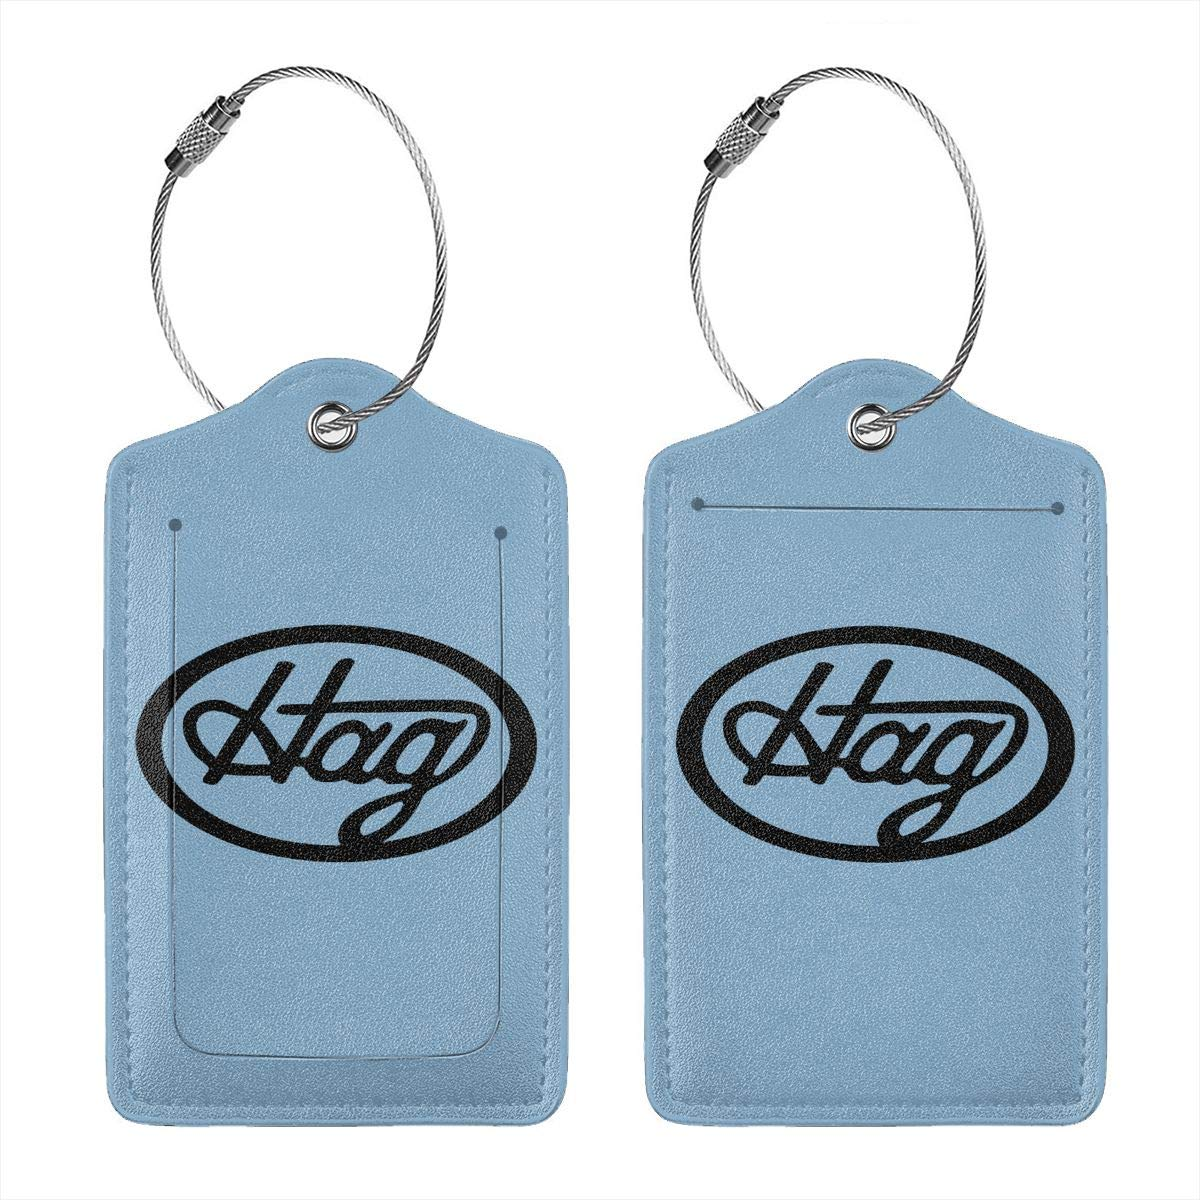 Merle Haggard Hag Logo Leather Luggage Tag Travel ID Label For Baggage Suitcase